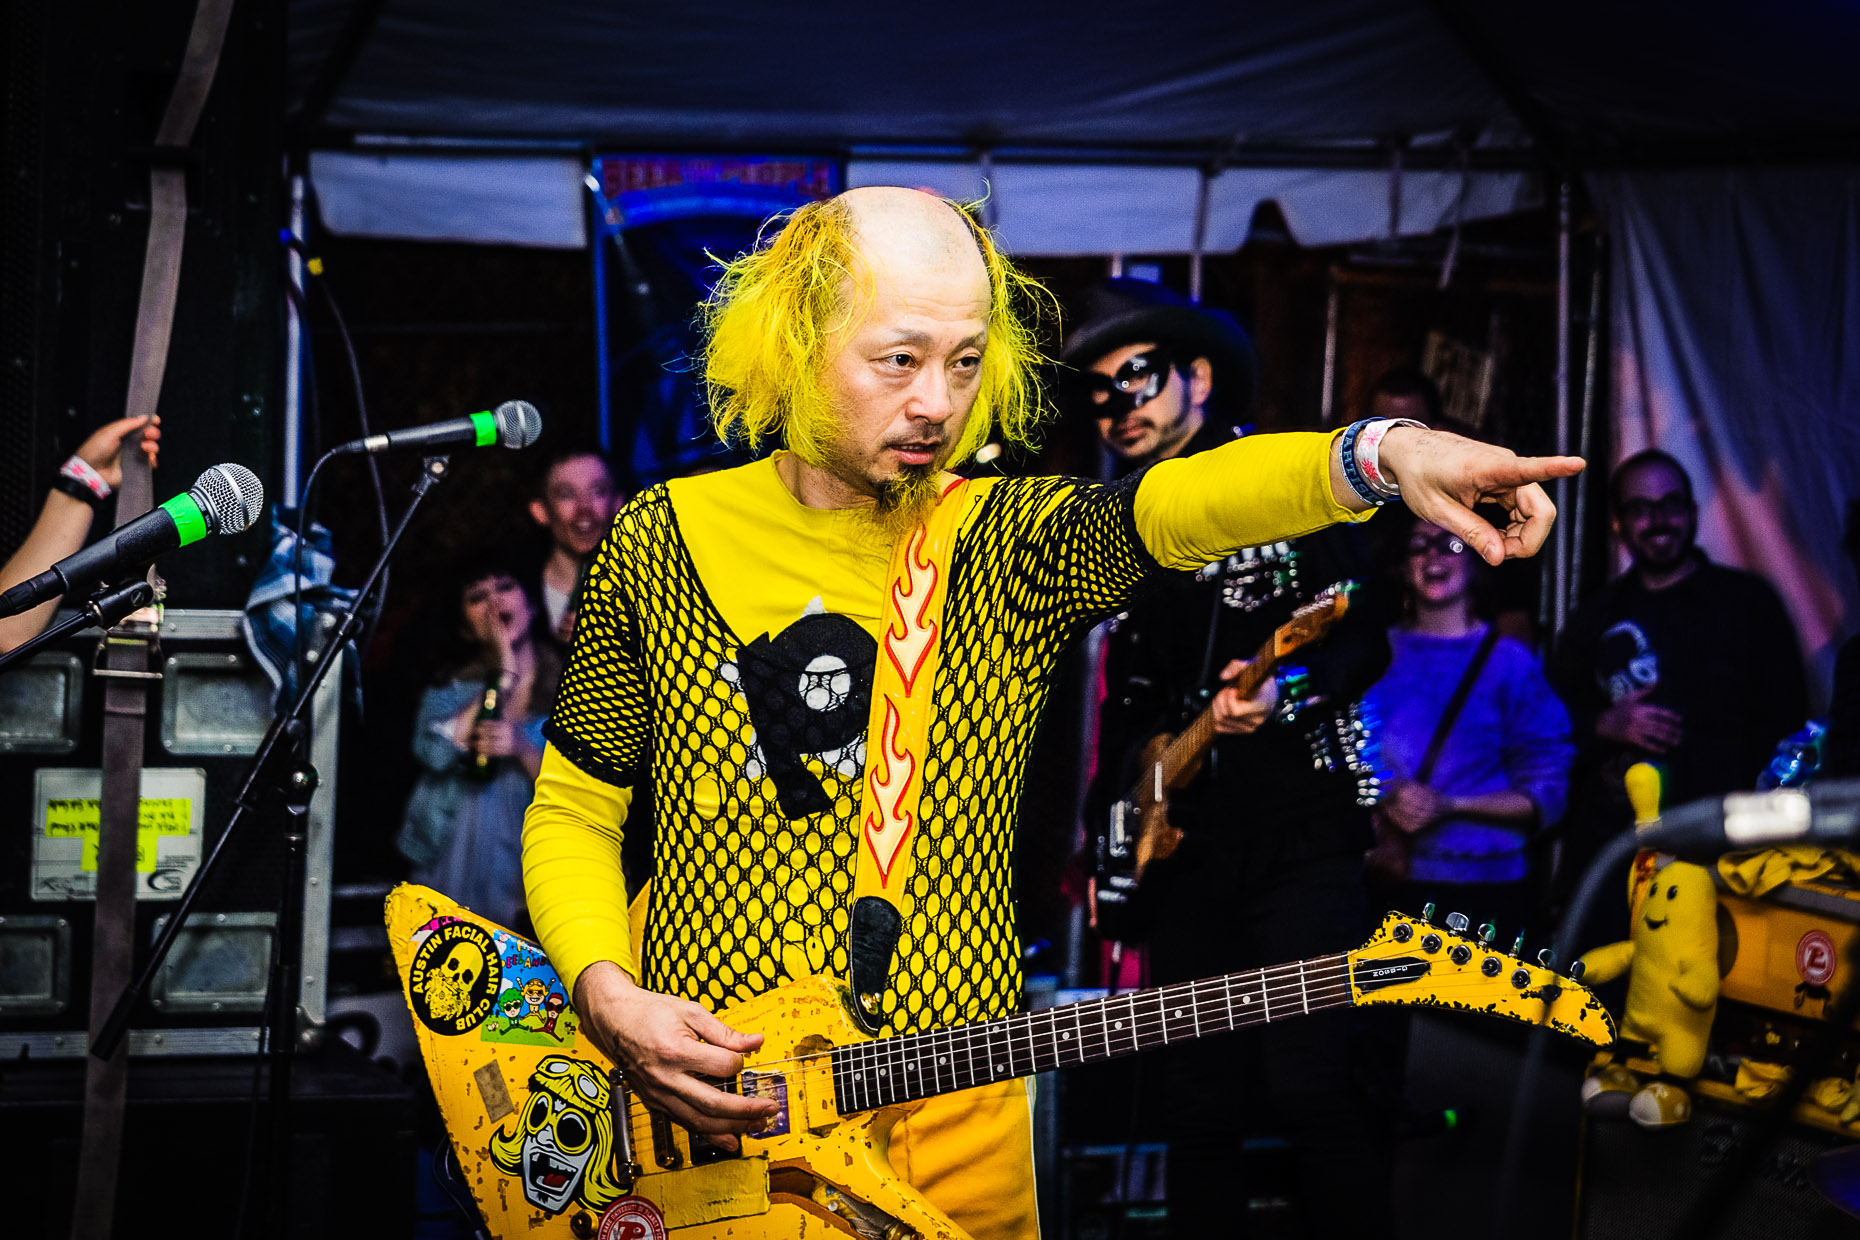 Peelander-Z-Austin-Music-Photographer-Commercial-Texas-SXSW.jpg